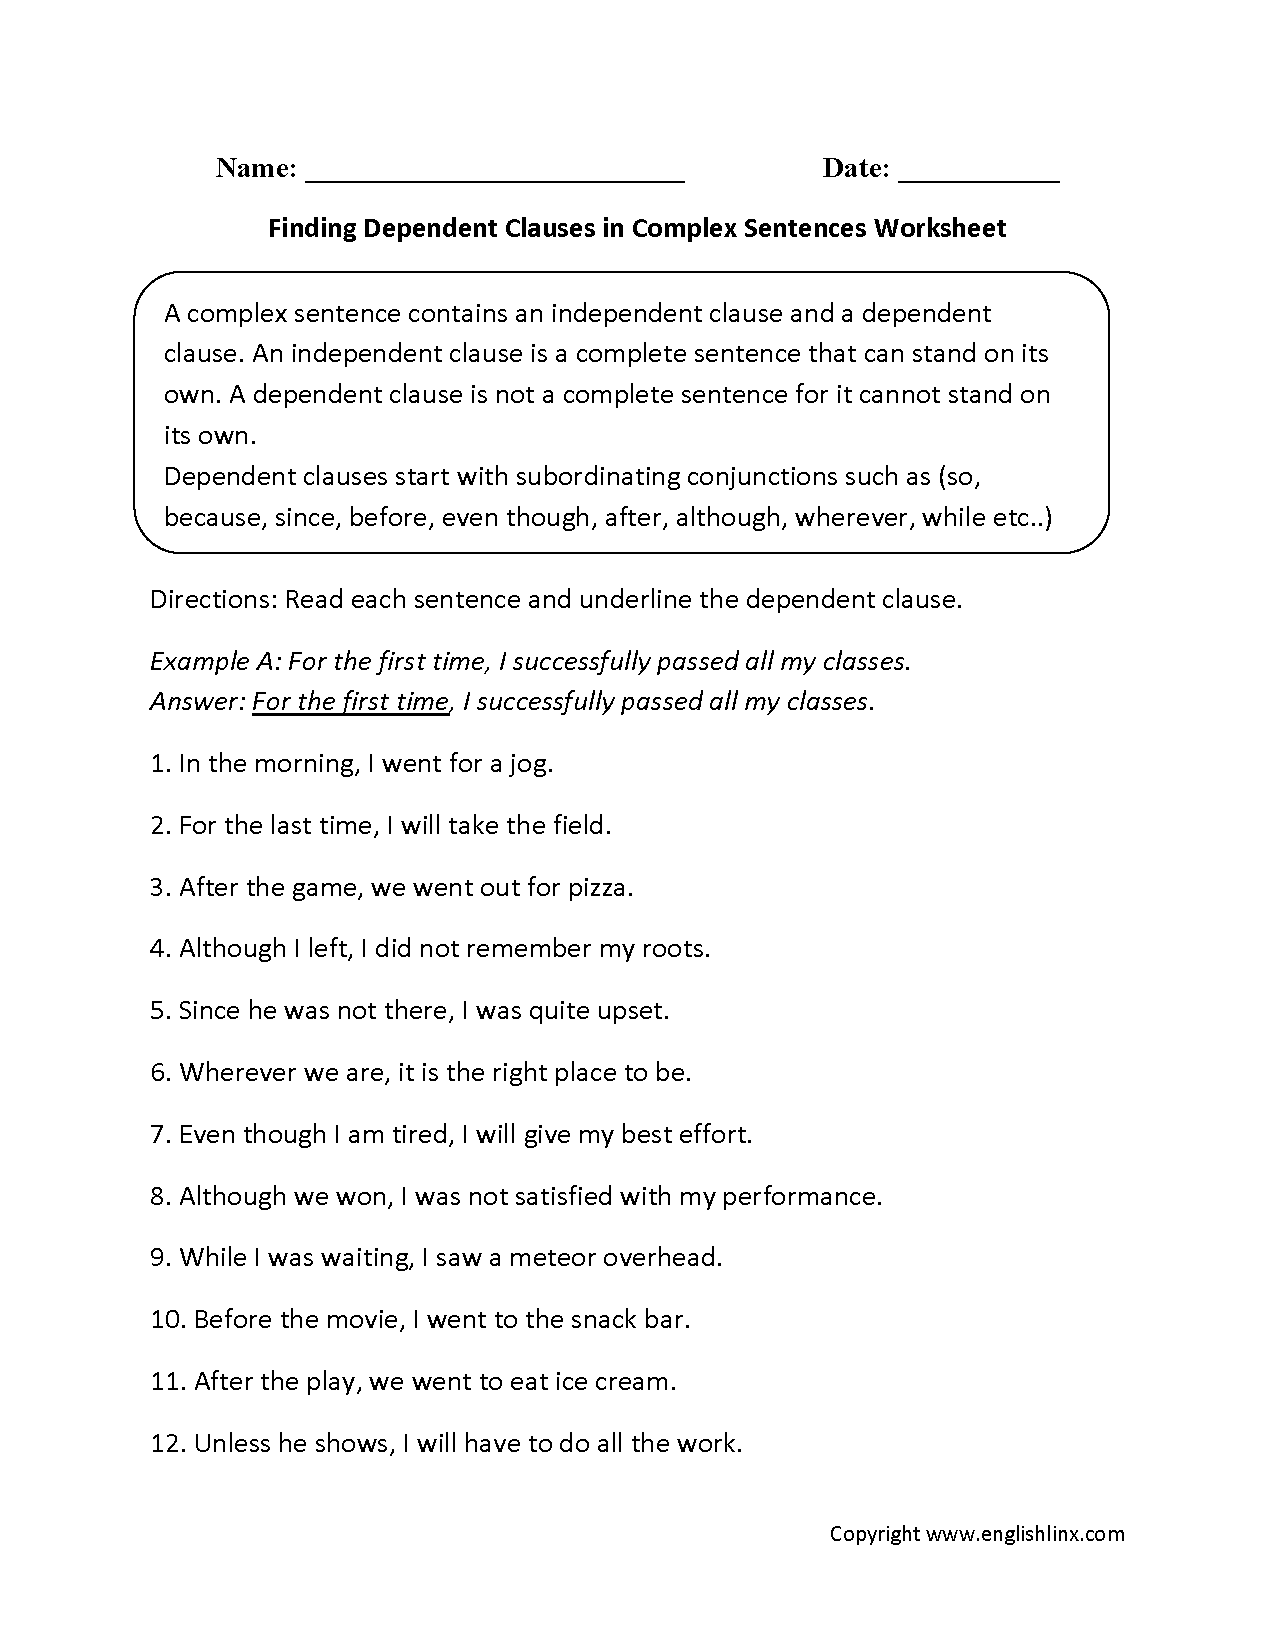 Finding Dependent Clauses plex Sentences Worksheets